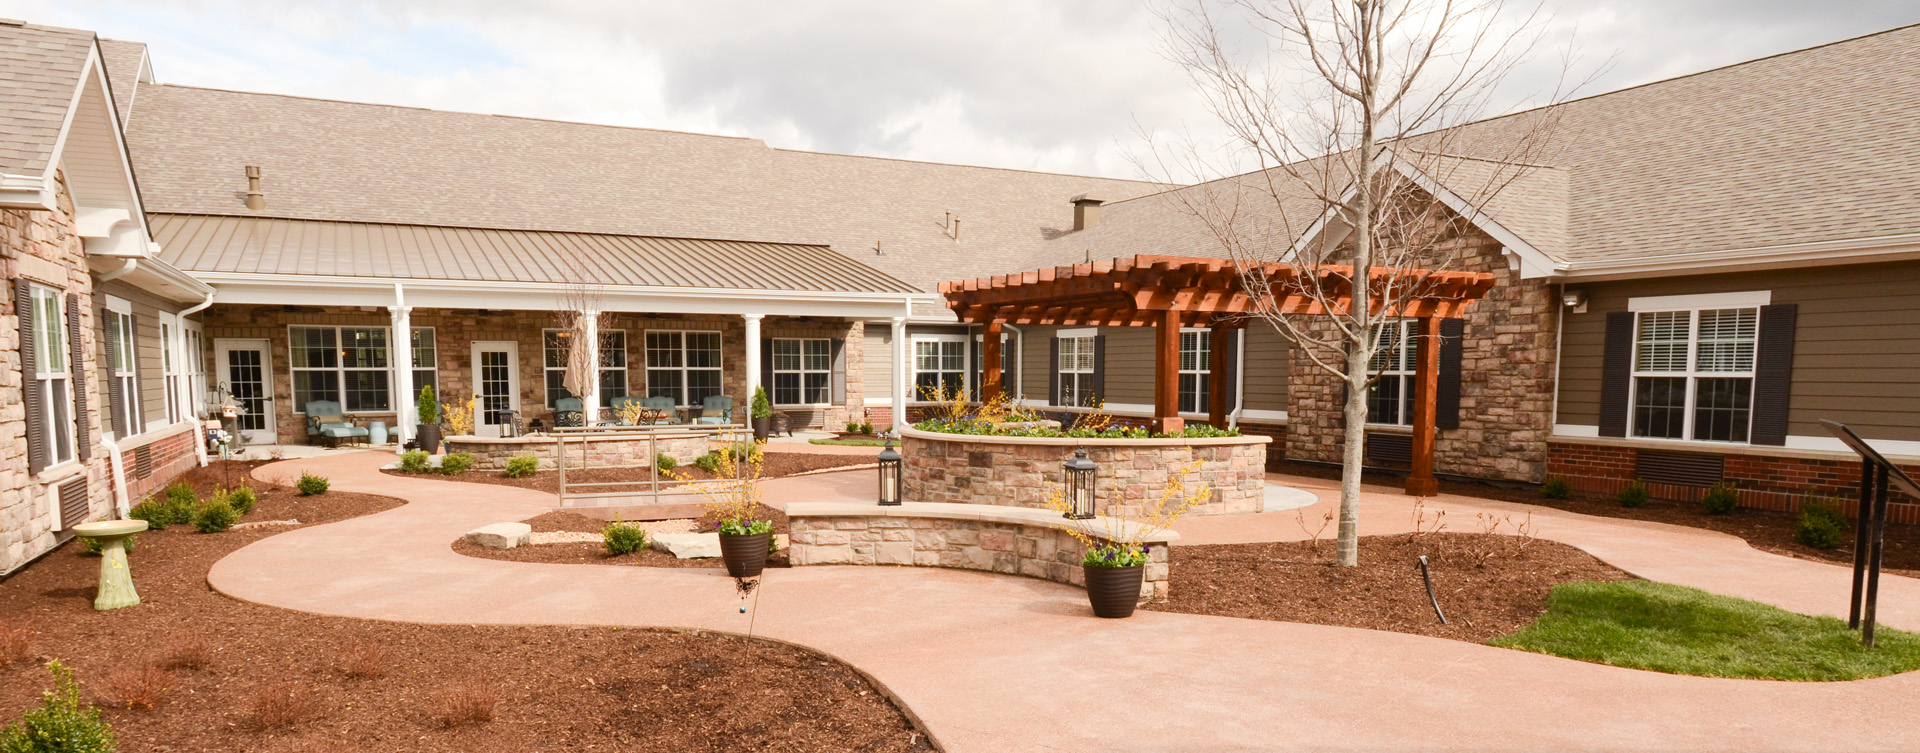 Enjoy the outdoors in a whole new light by stepping into our secure courtyard at Bickford of Gurnee